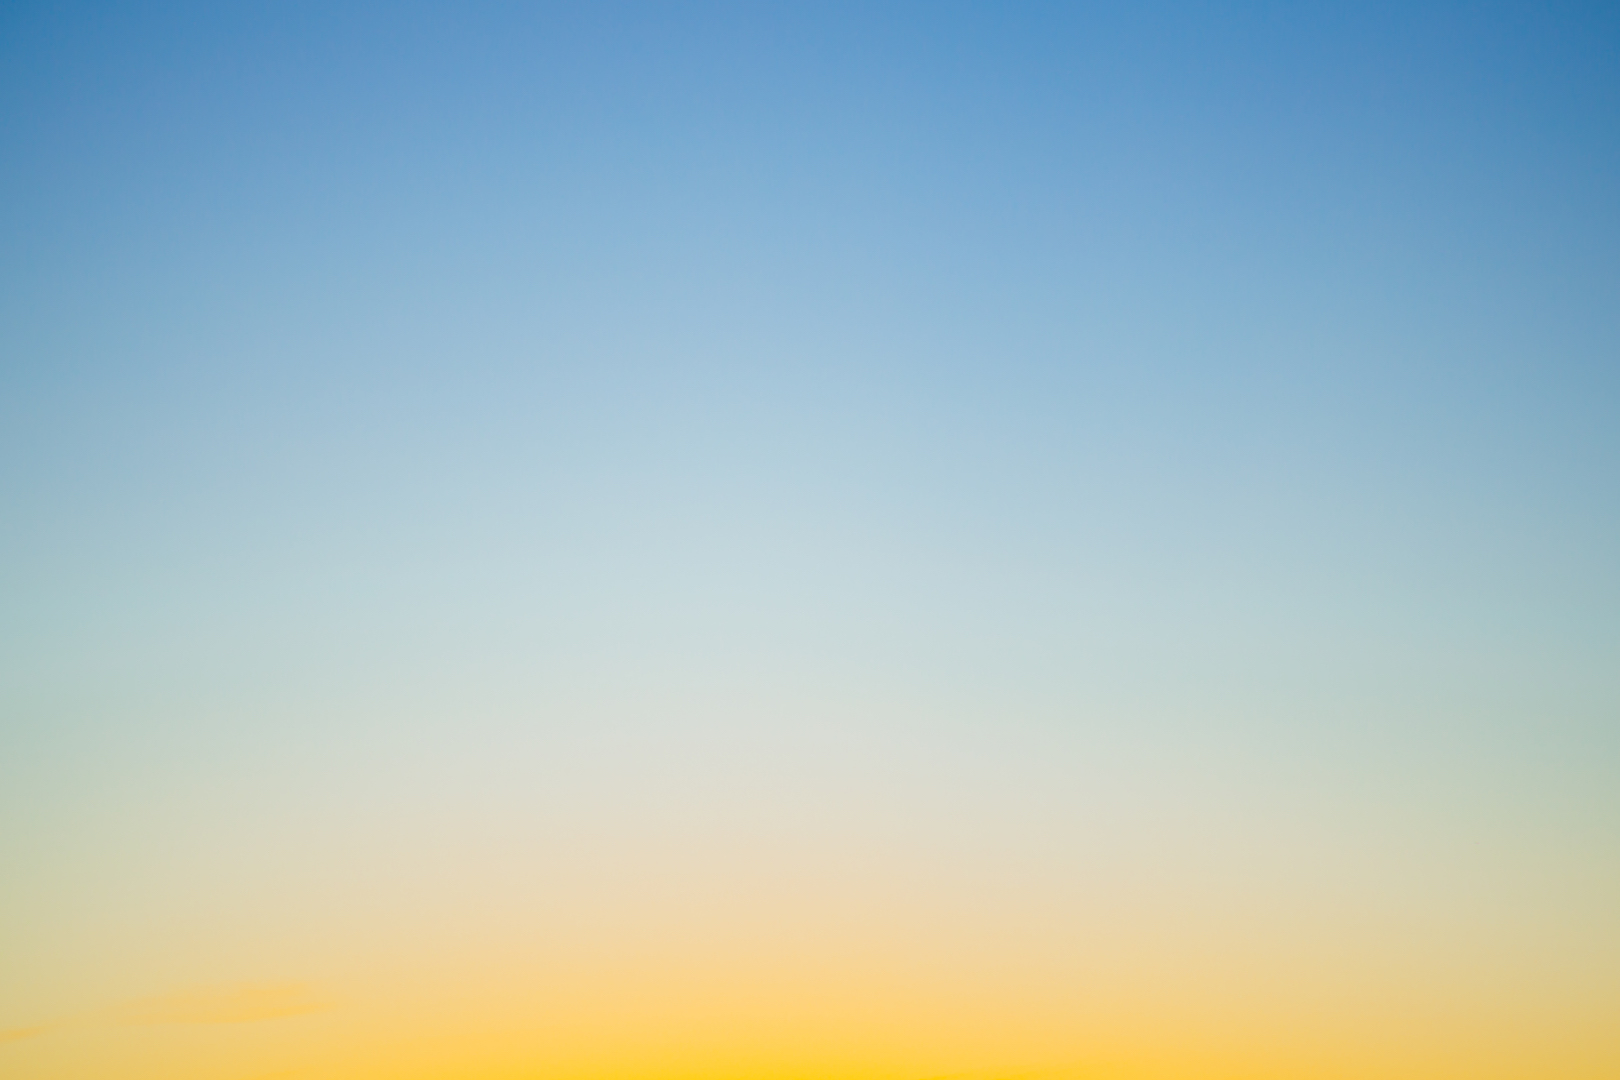 Sunset_Gradient_16